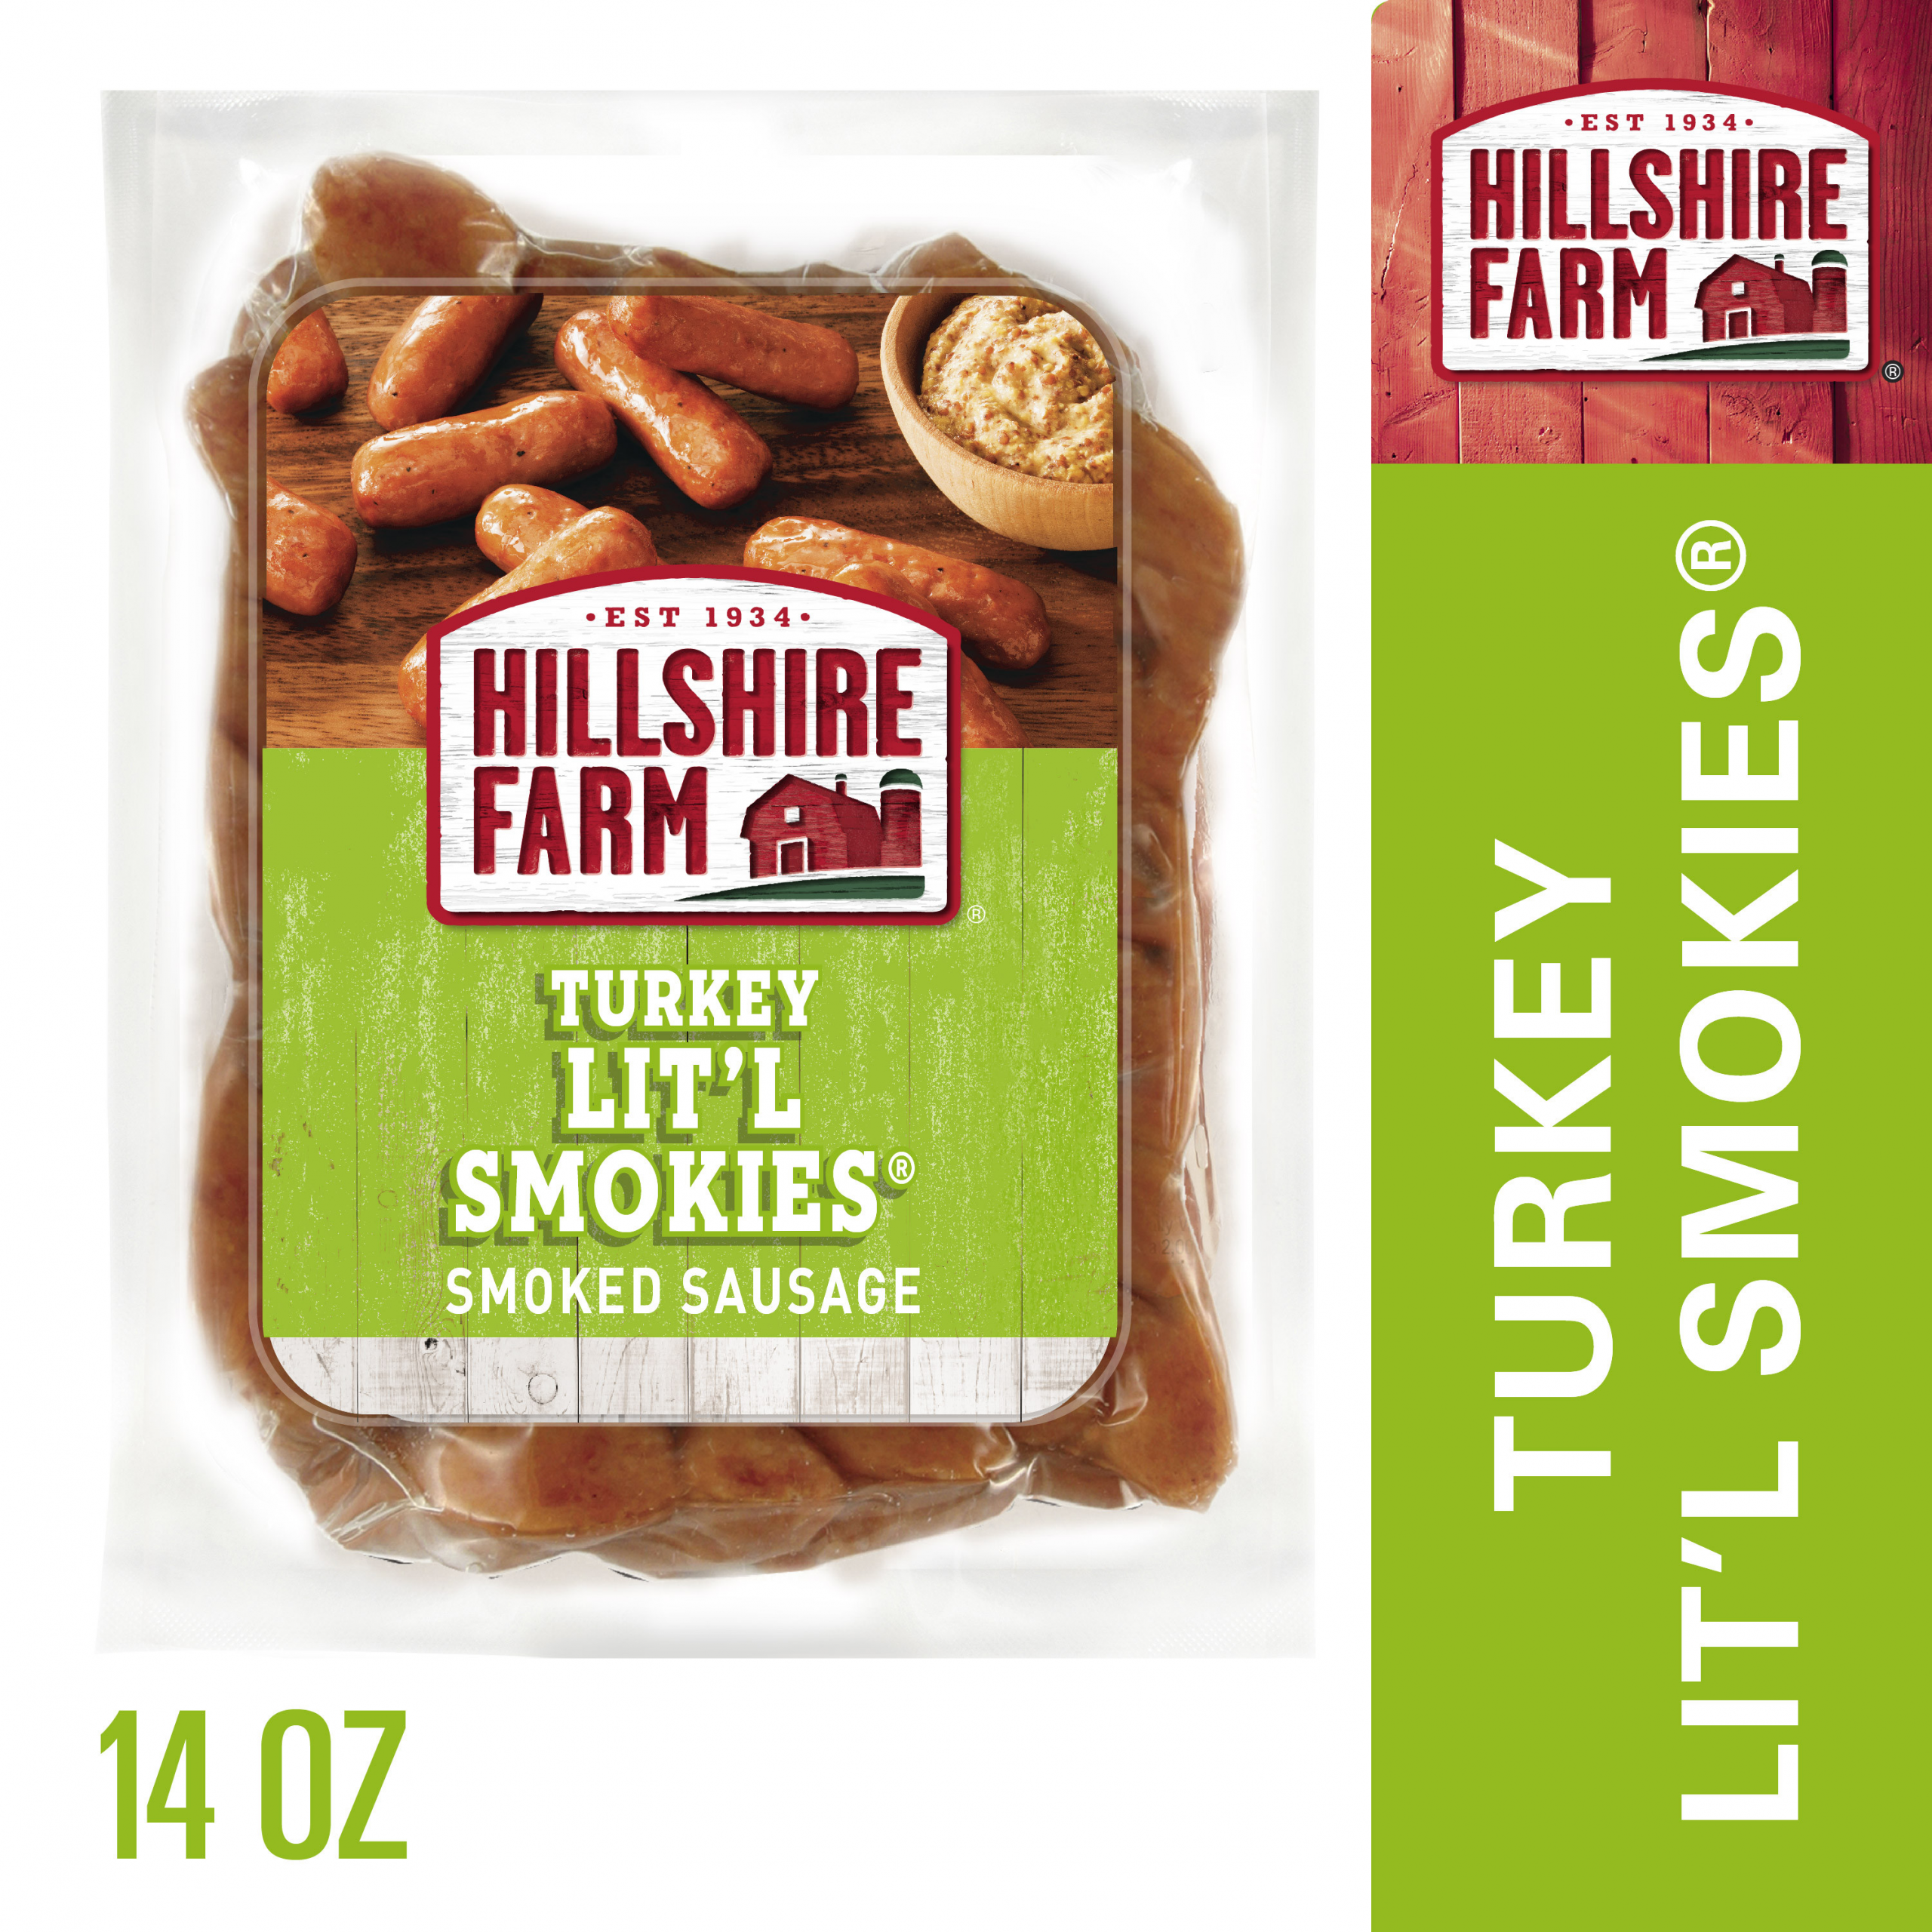 Hillshire Farms Turkey Sausage  Hillshire Farm Turkey Lit l Smokies Smoked Sausage 14